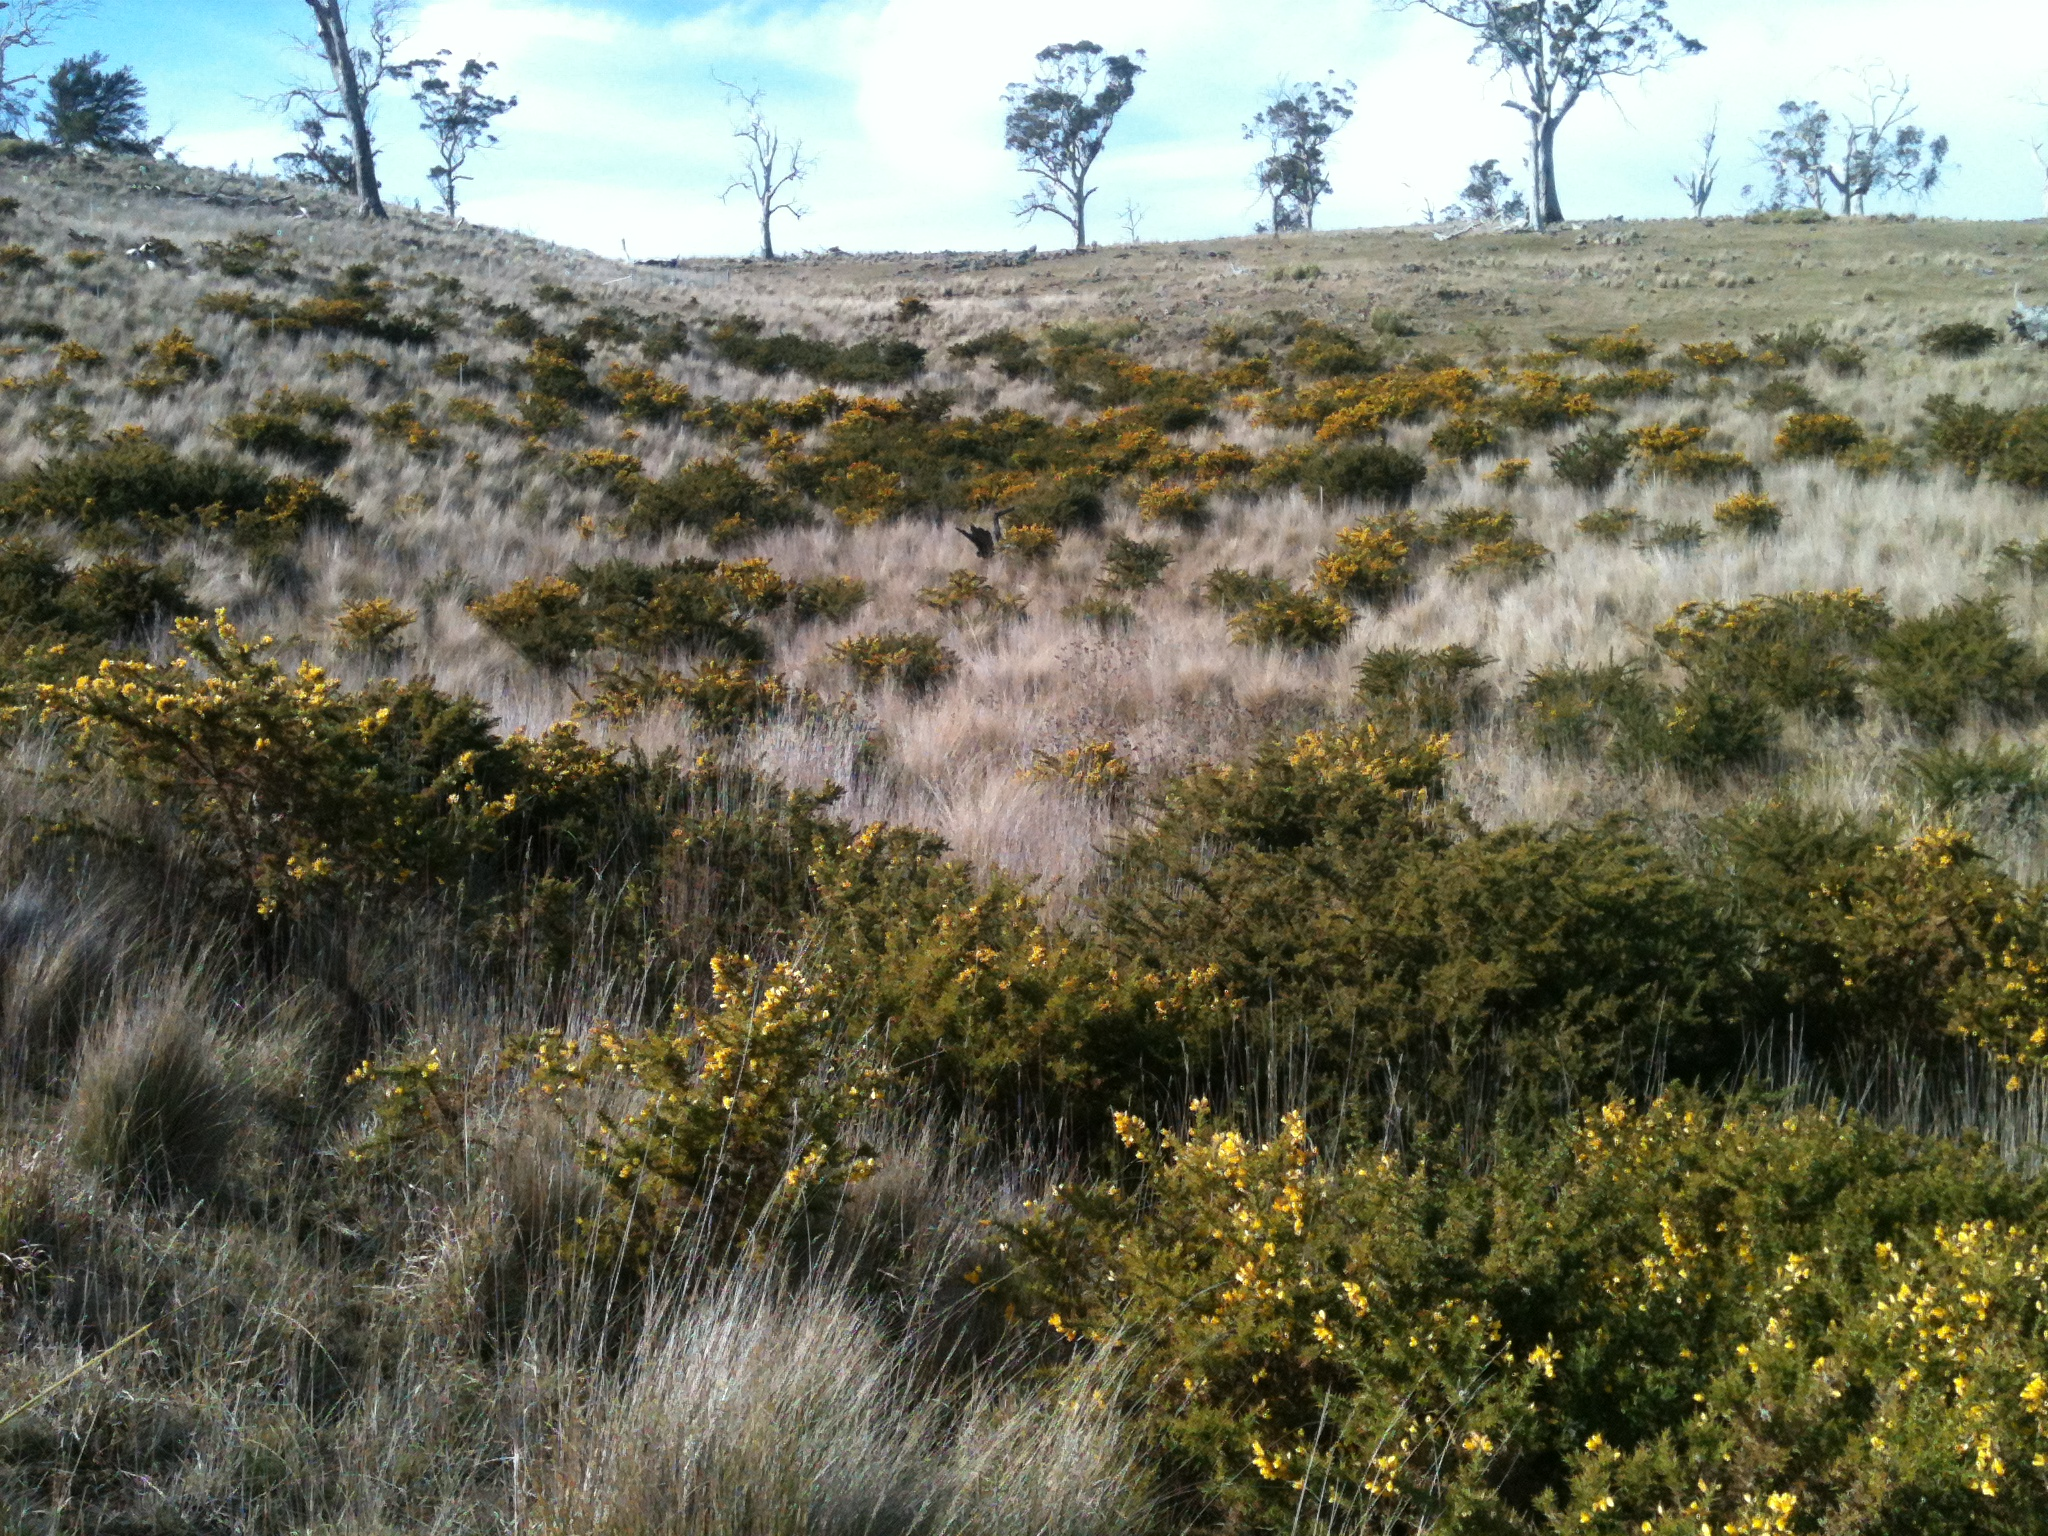 The view at sheep's eye level of the rank grass in the gully, just after the sheep passed through it in the previous two photos.